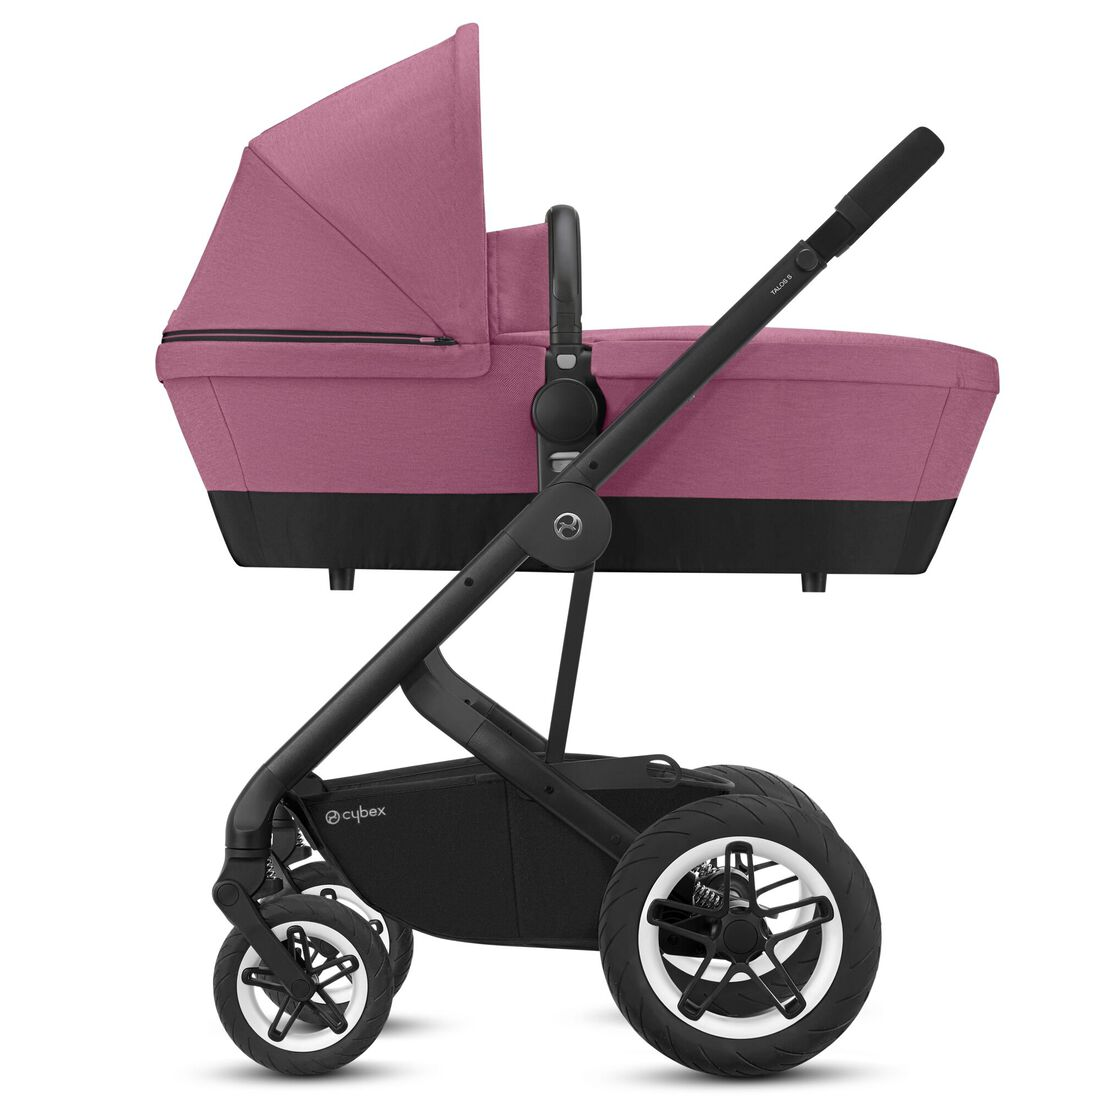 CYBEX Talos S 2-in-1 - Magnolia Pink in Magnolia Pink large image number 2